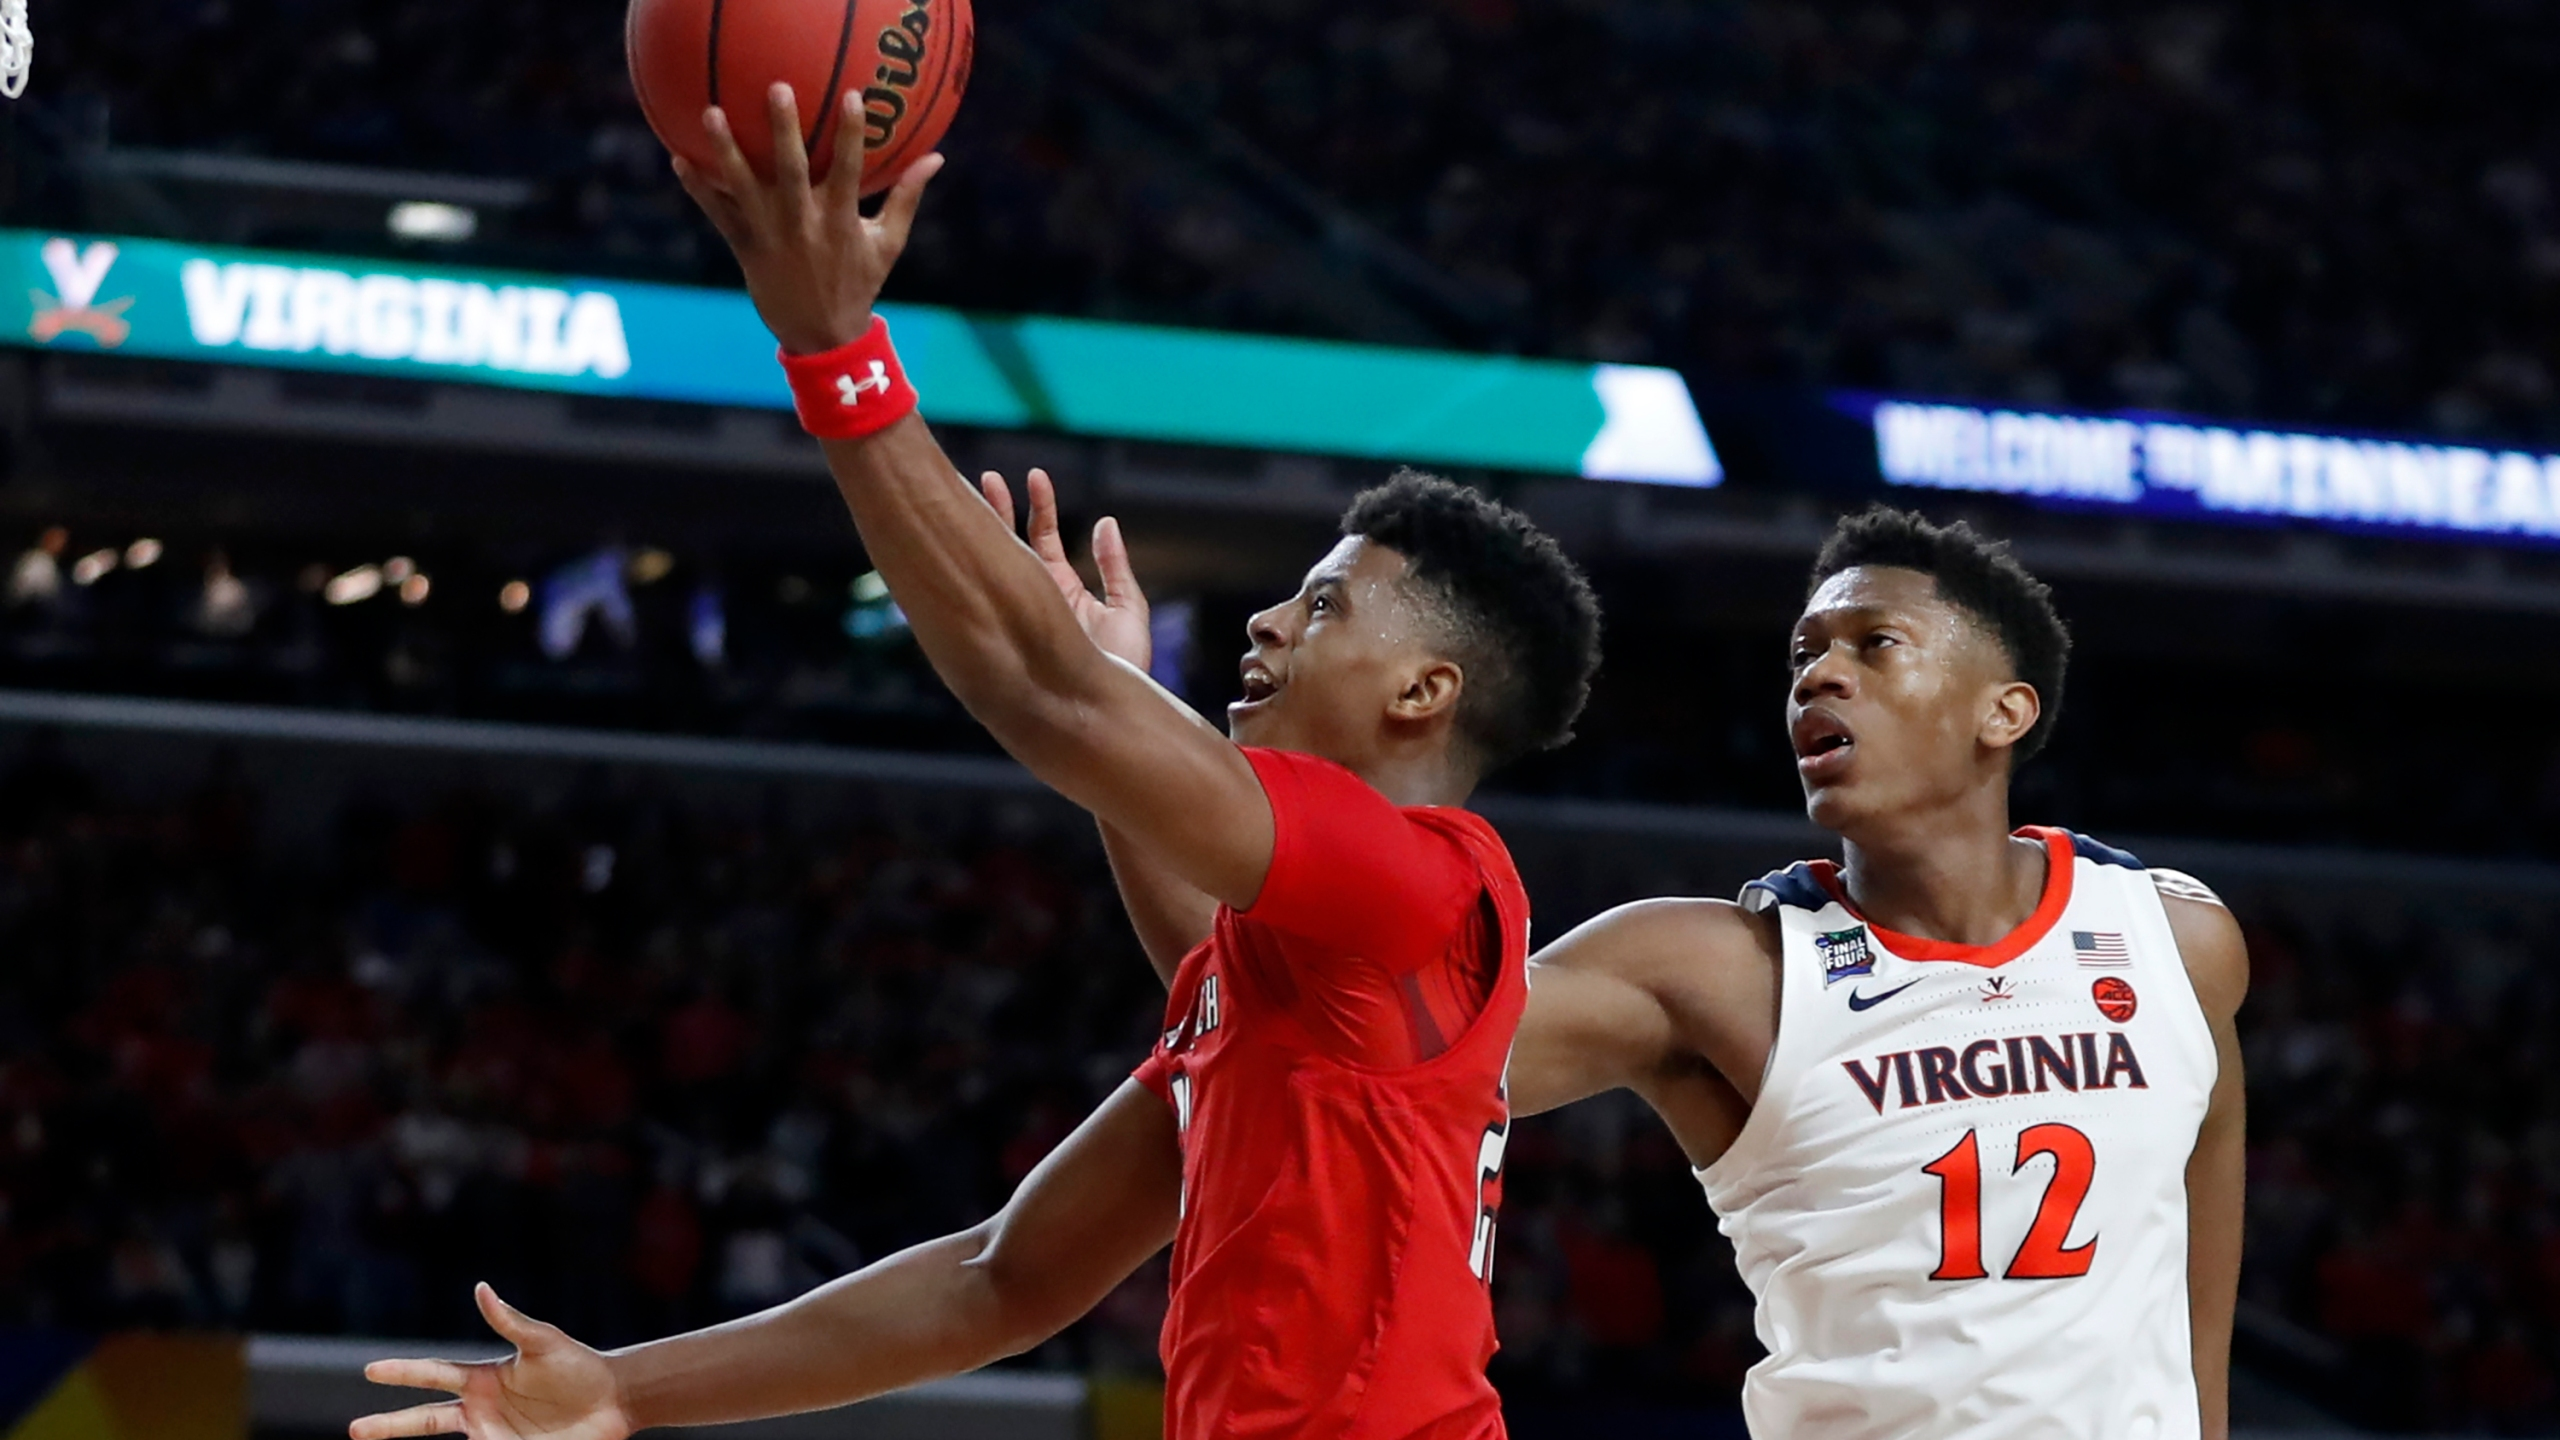 Final_Four_Texas_Tech_Virginia_Basketball_30855-159532.jpg27987299